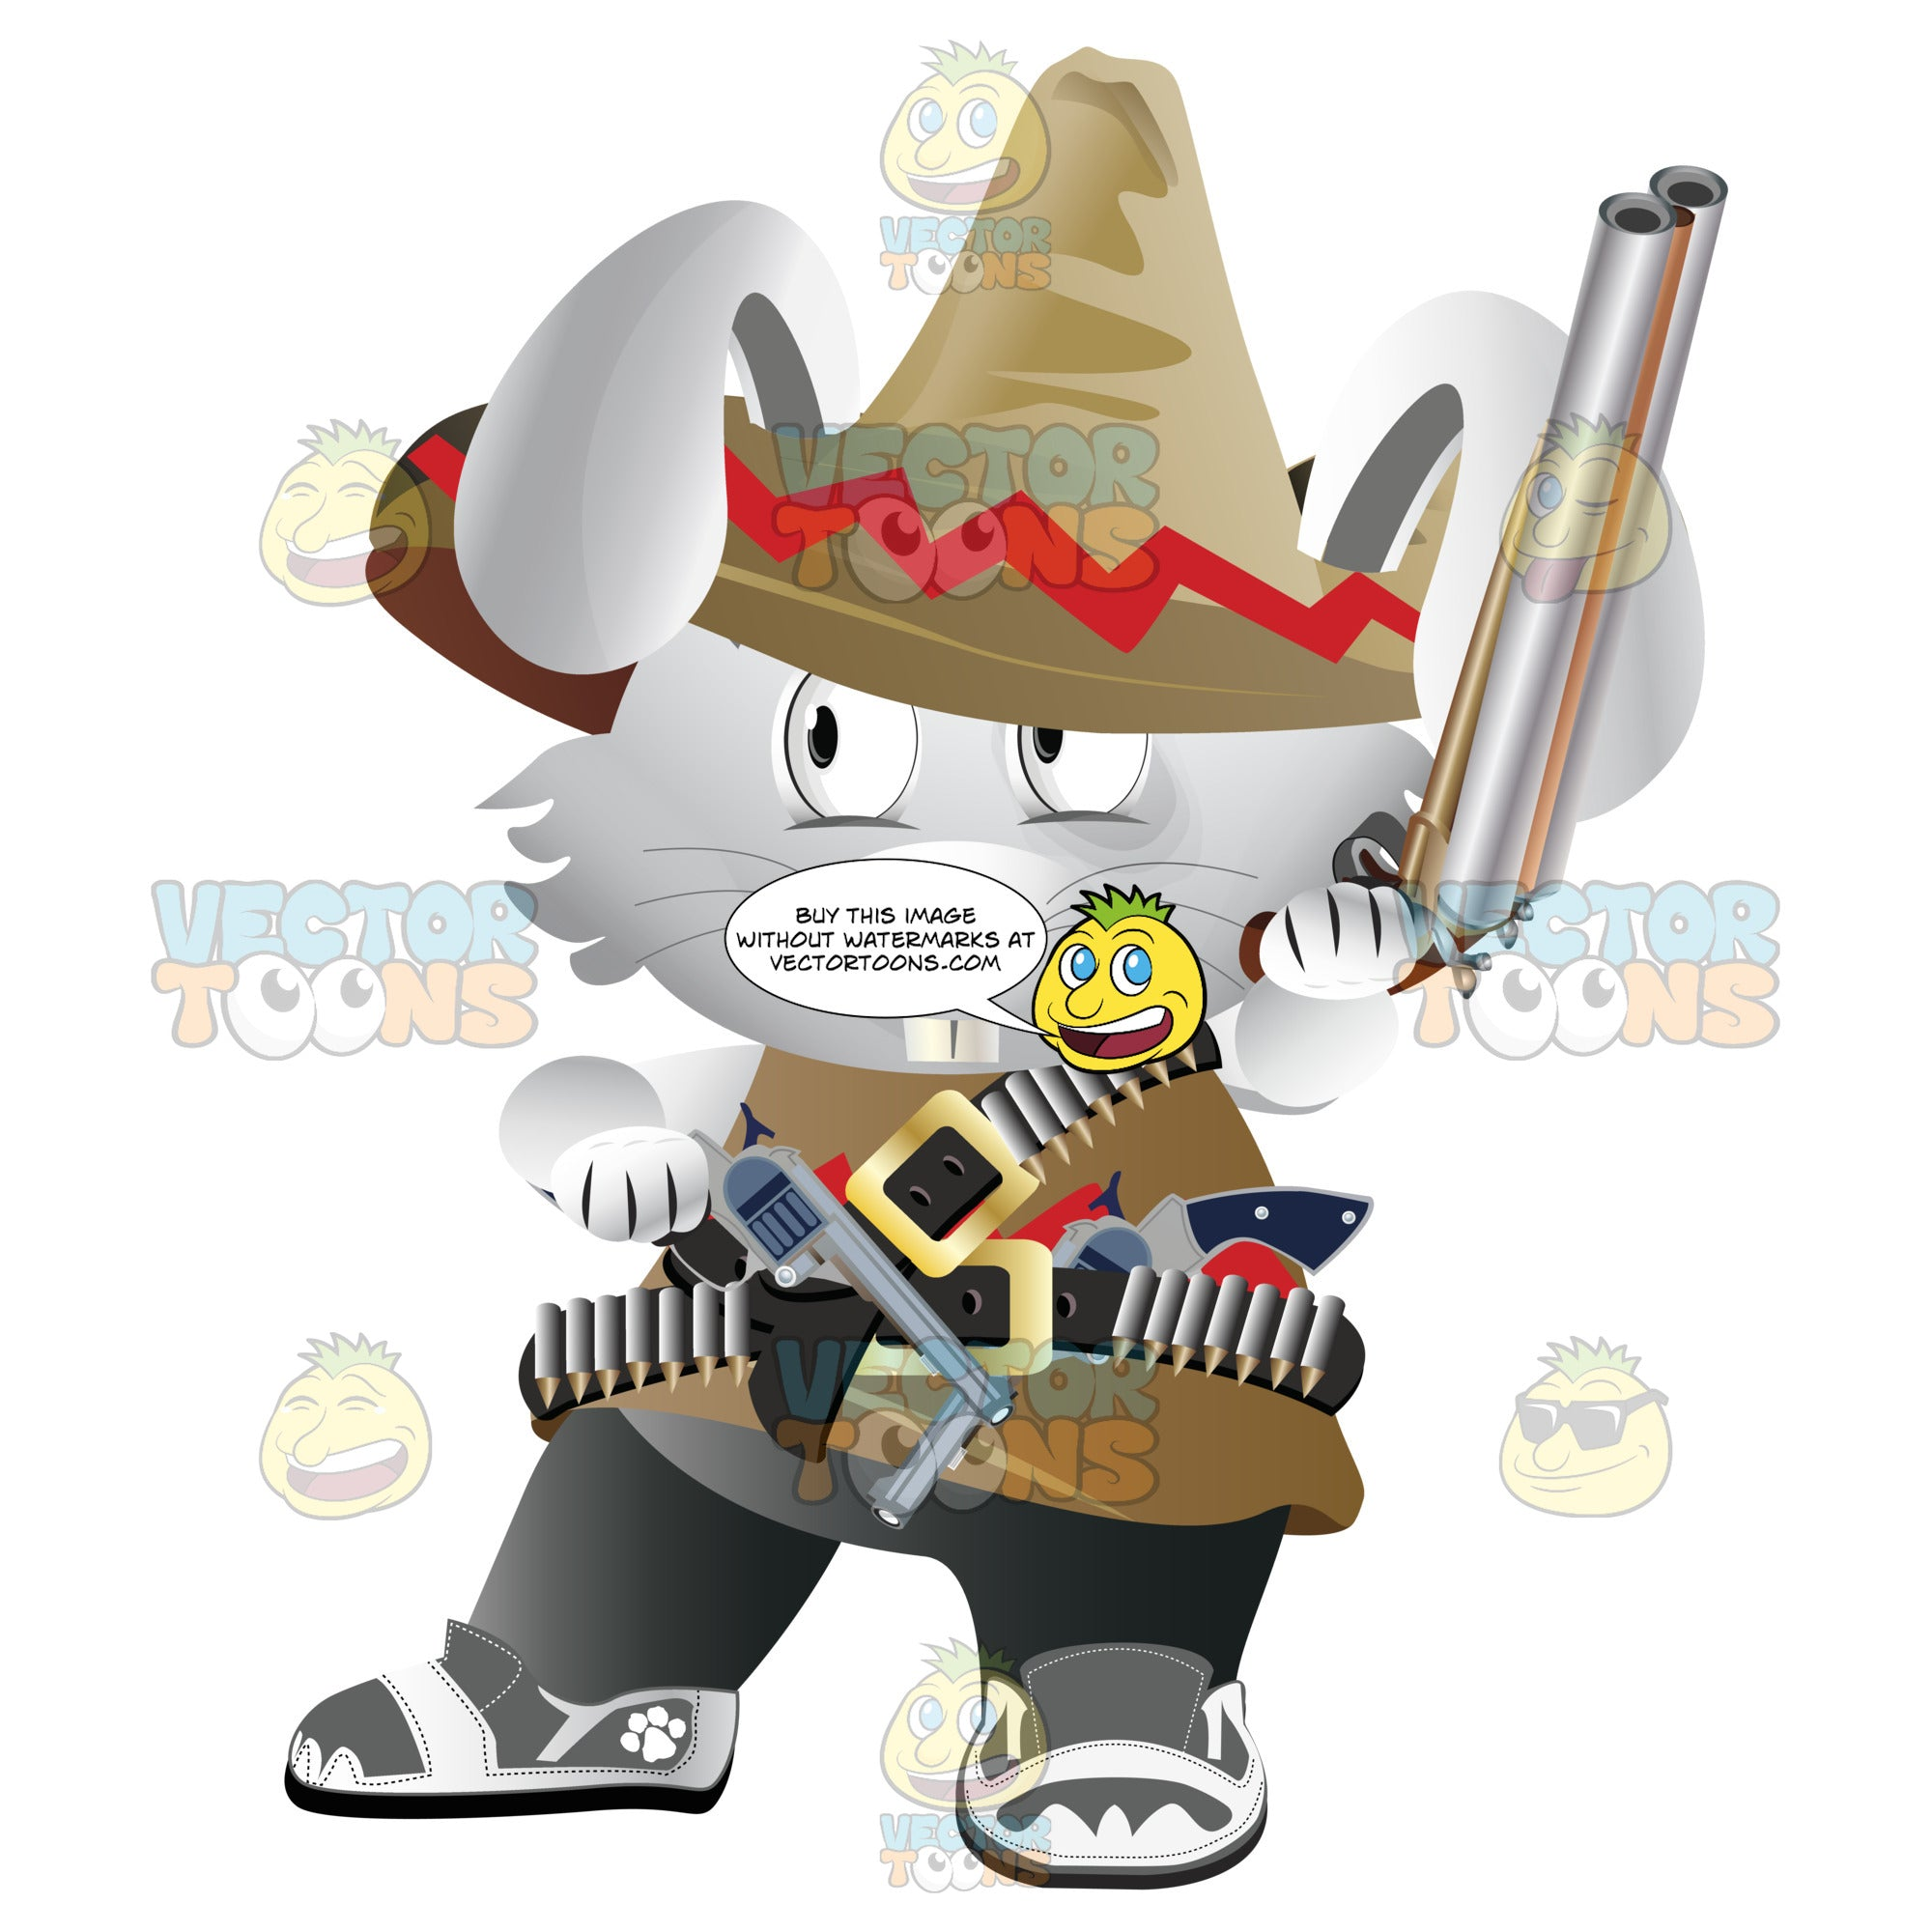 Bunny Dresses As Mexican Bandit In Sombrero, Tunic And Gun Belts With Gun